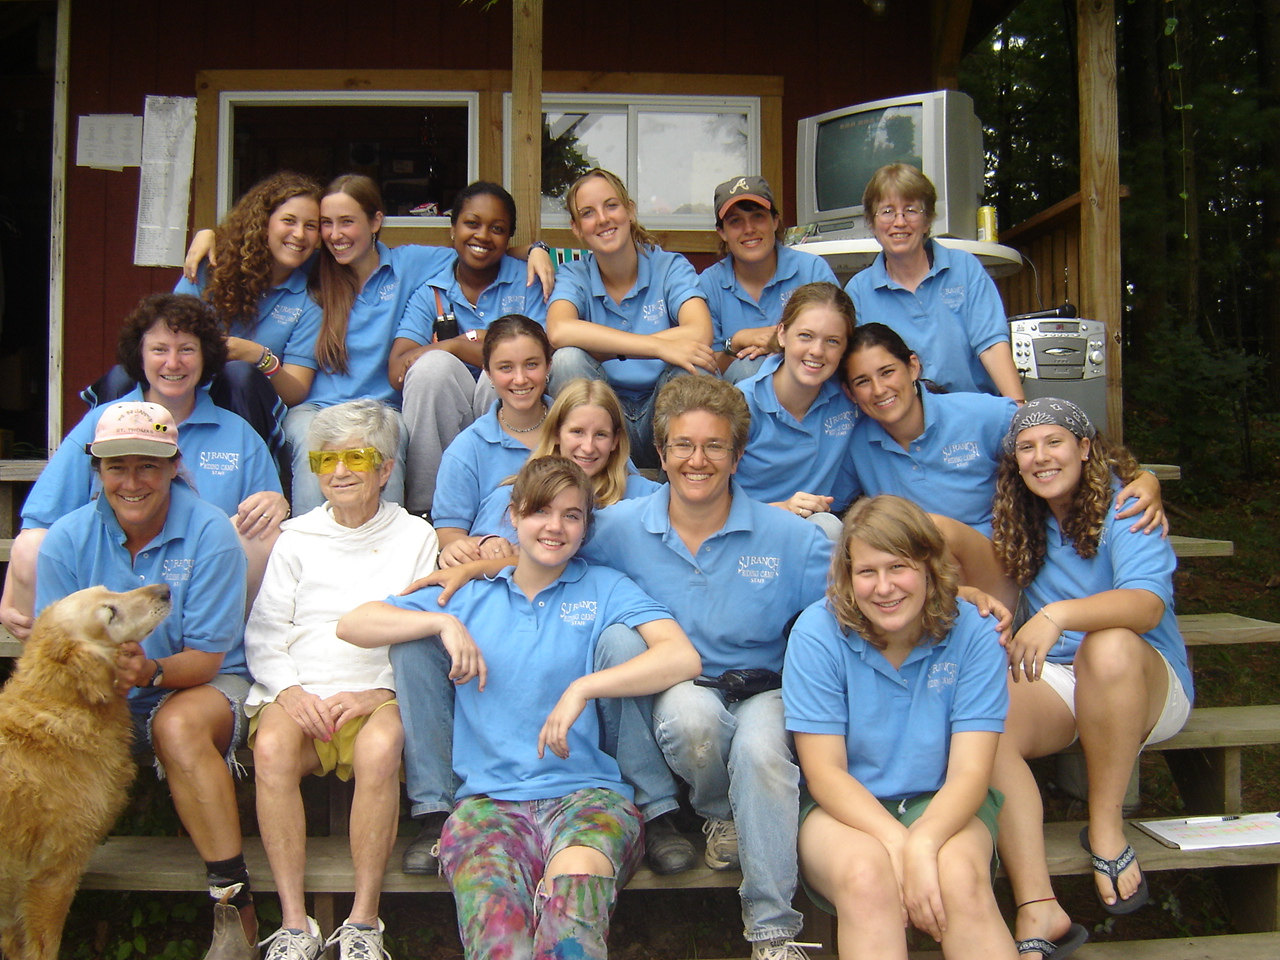 2005 Staff Including Founder Mary E. Haines, at age 91!